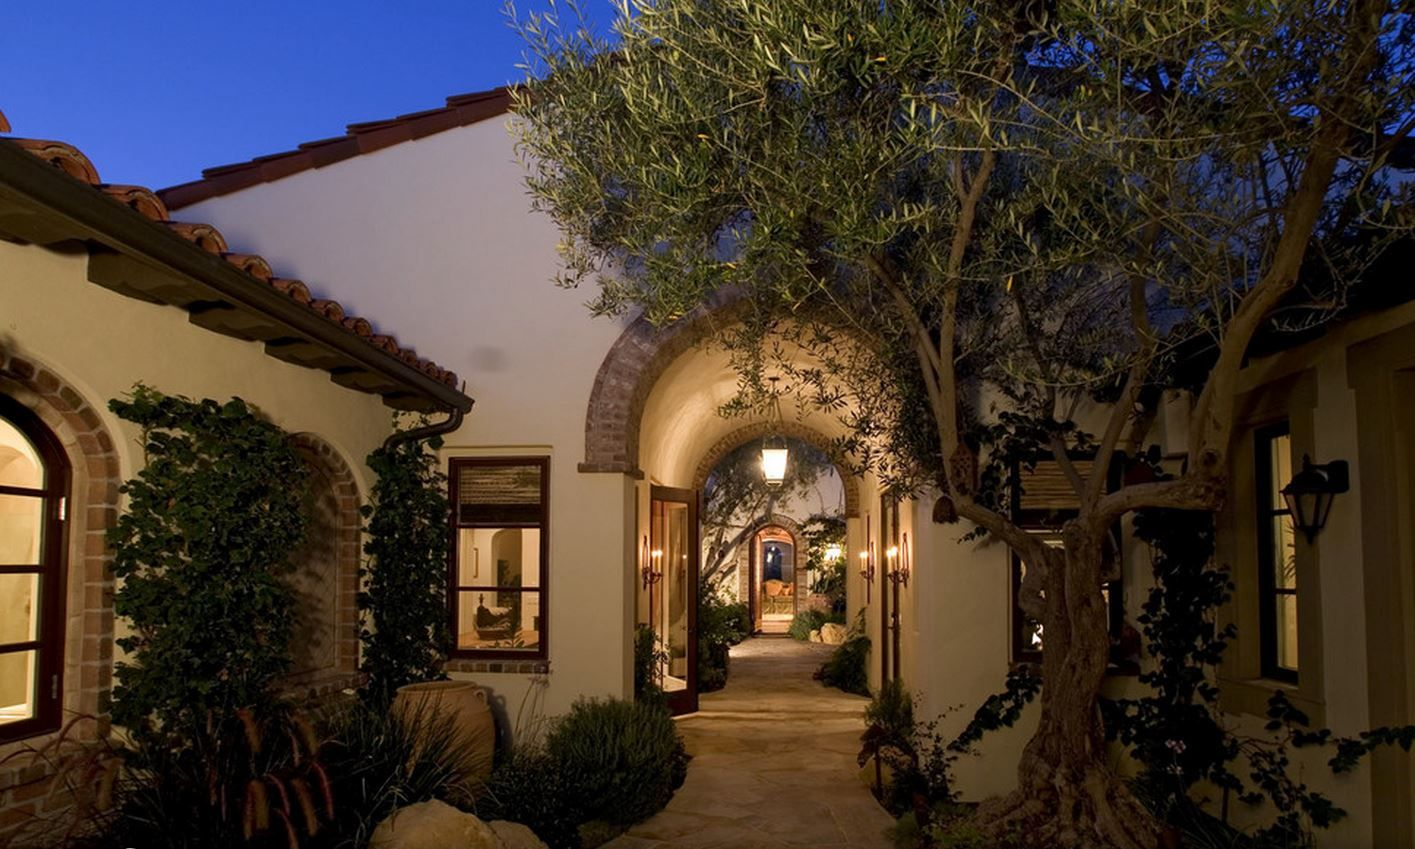 Pin by karen bala aia on casitas by the river pinterest rivers